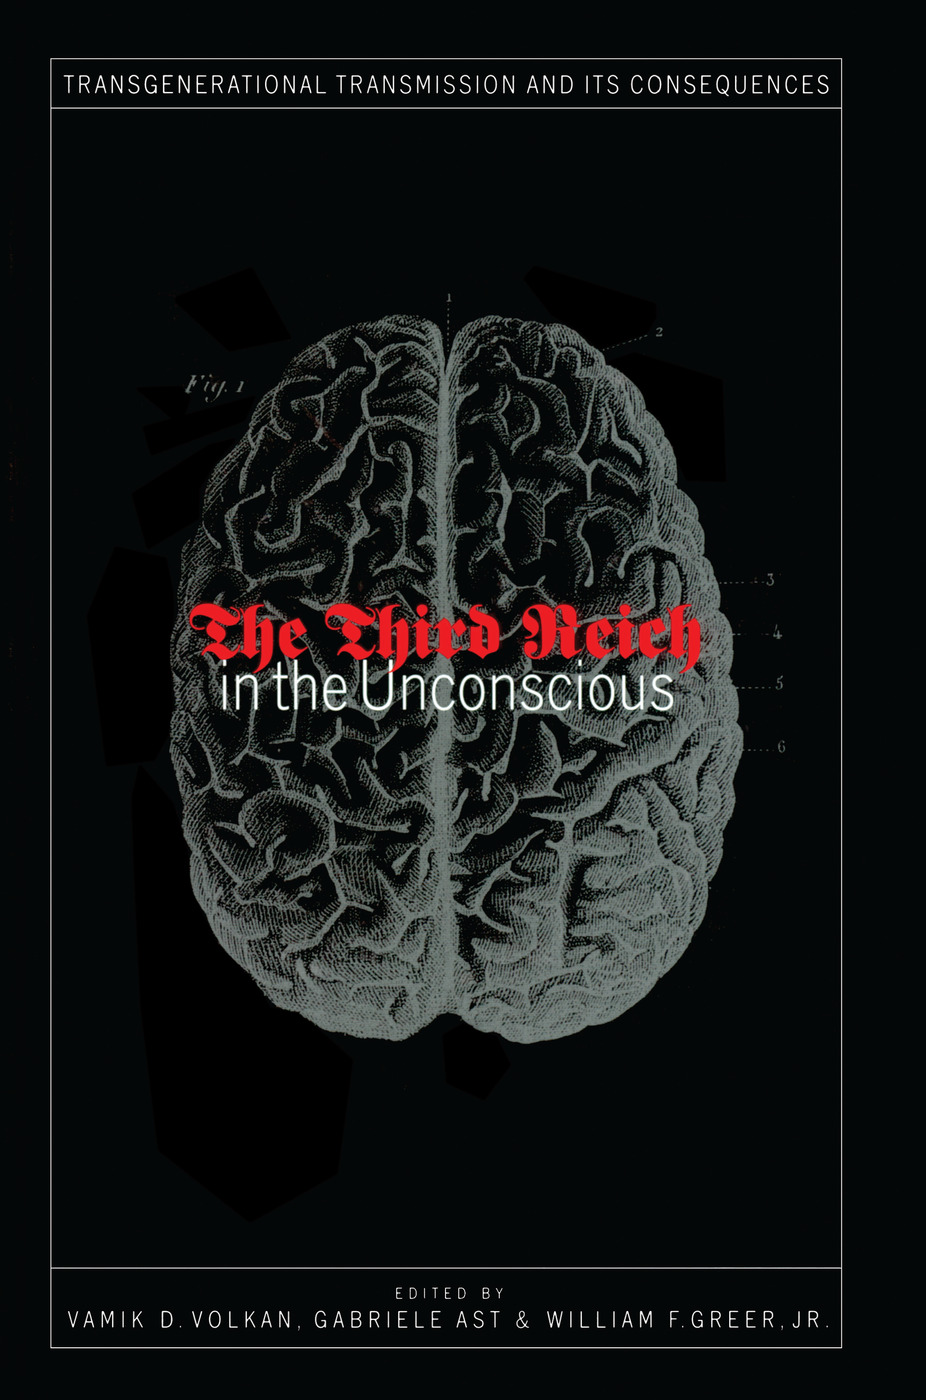 Third Reich in the Unconscious